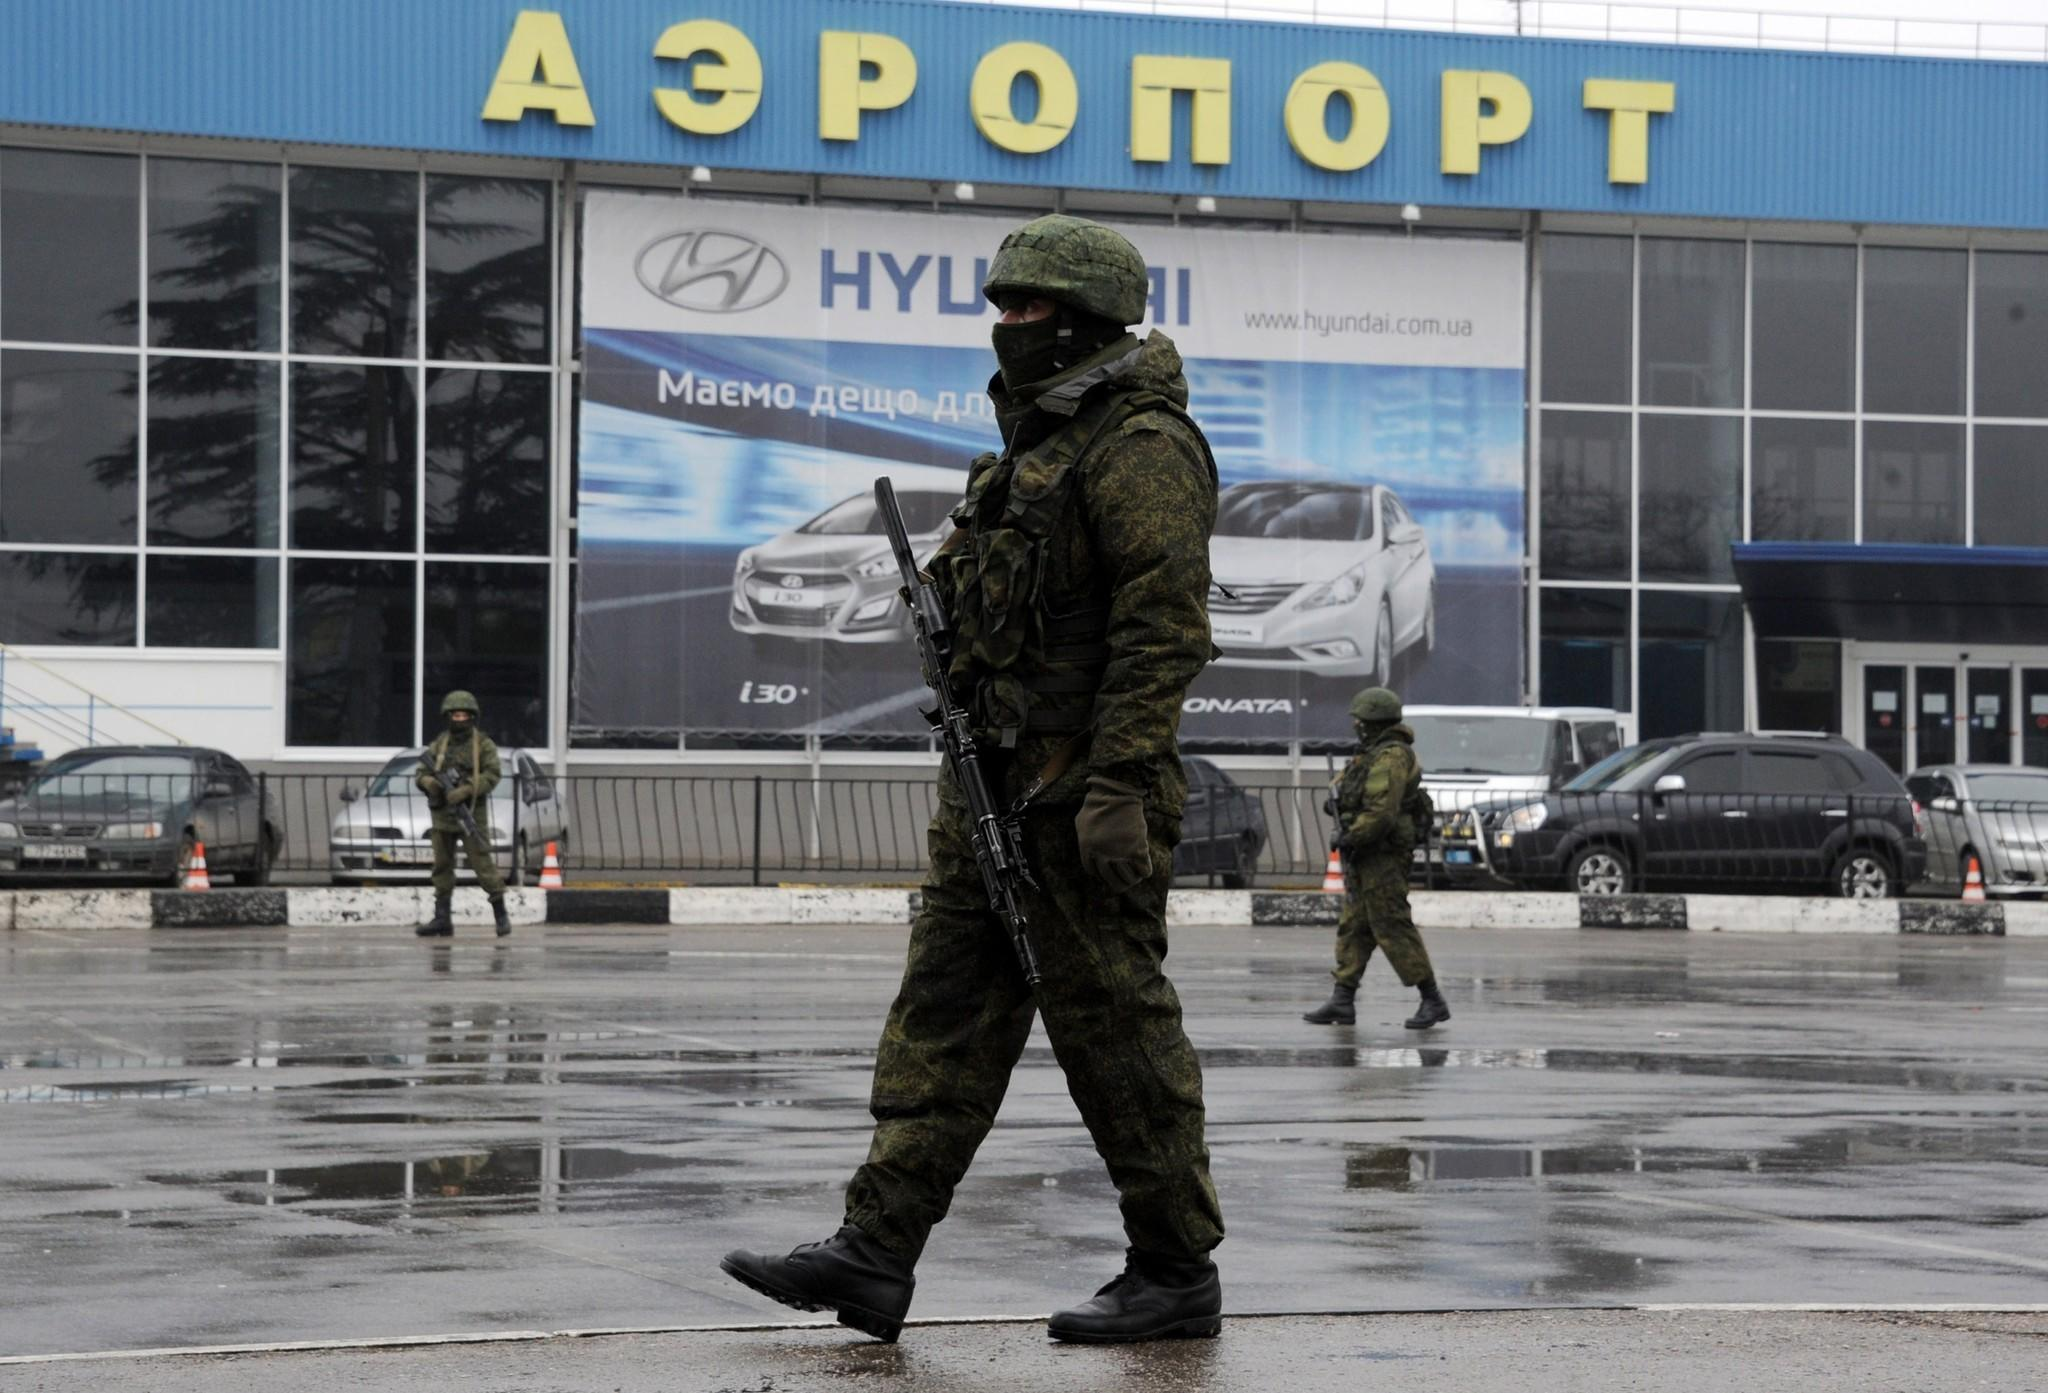 Russian troops seized control of Crimea's civilian international airport in Simferopol in late February, and the Russian government has proclaimed its takeover of air traffic control responsibility, effective Thursday, prompting a warning by the European Aviation Safety Agency of potential risks to civil aviation in the disputed region.